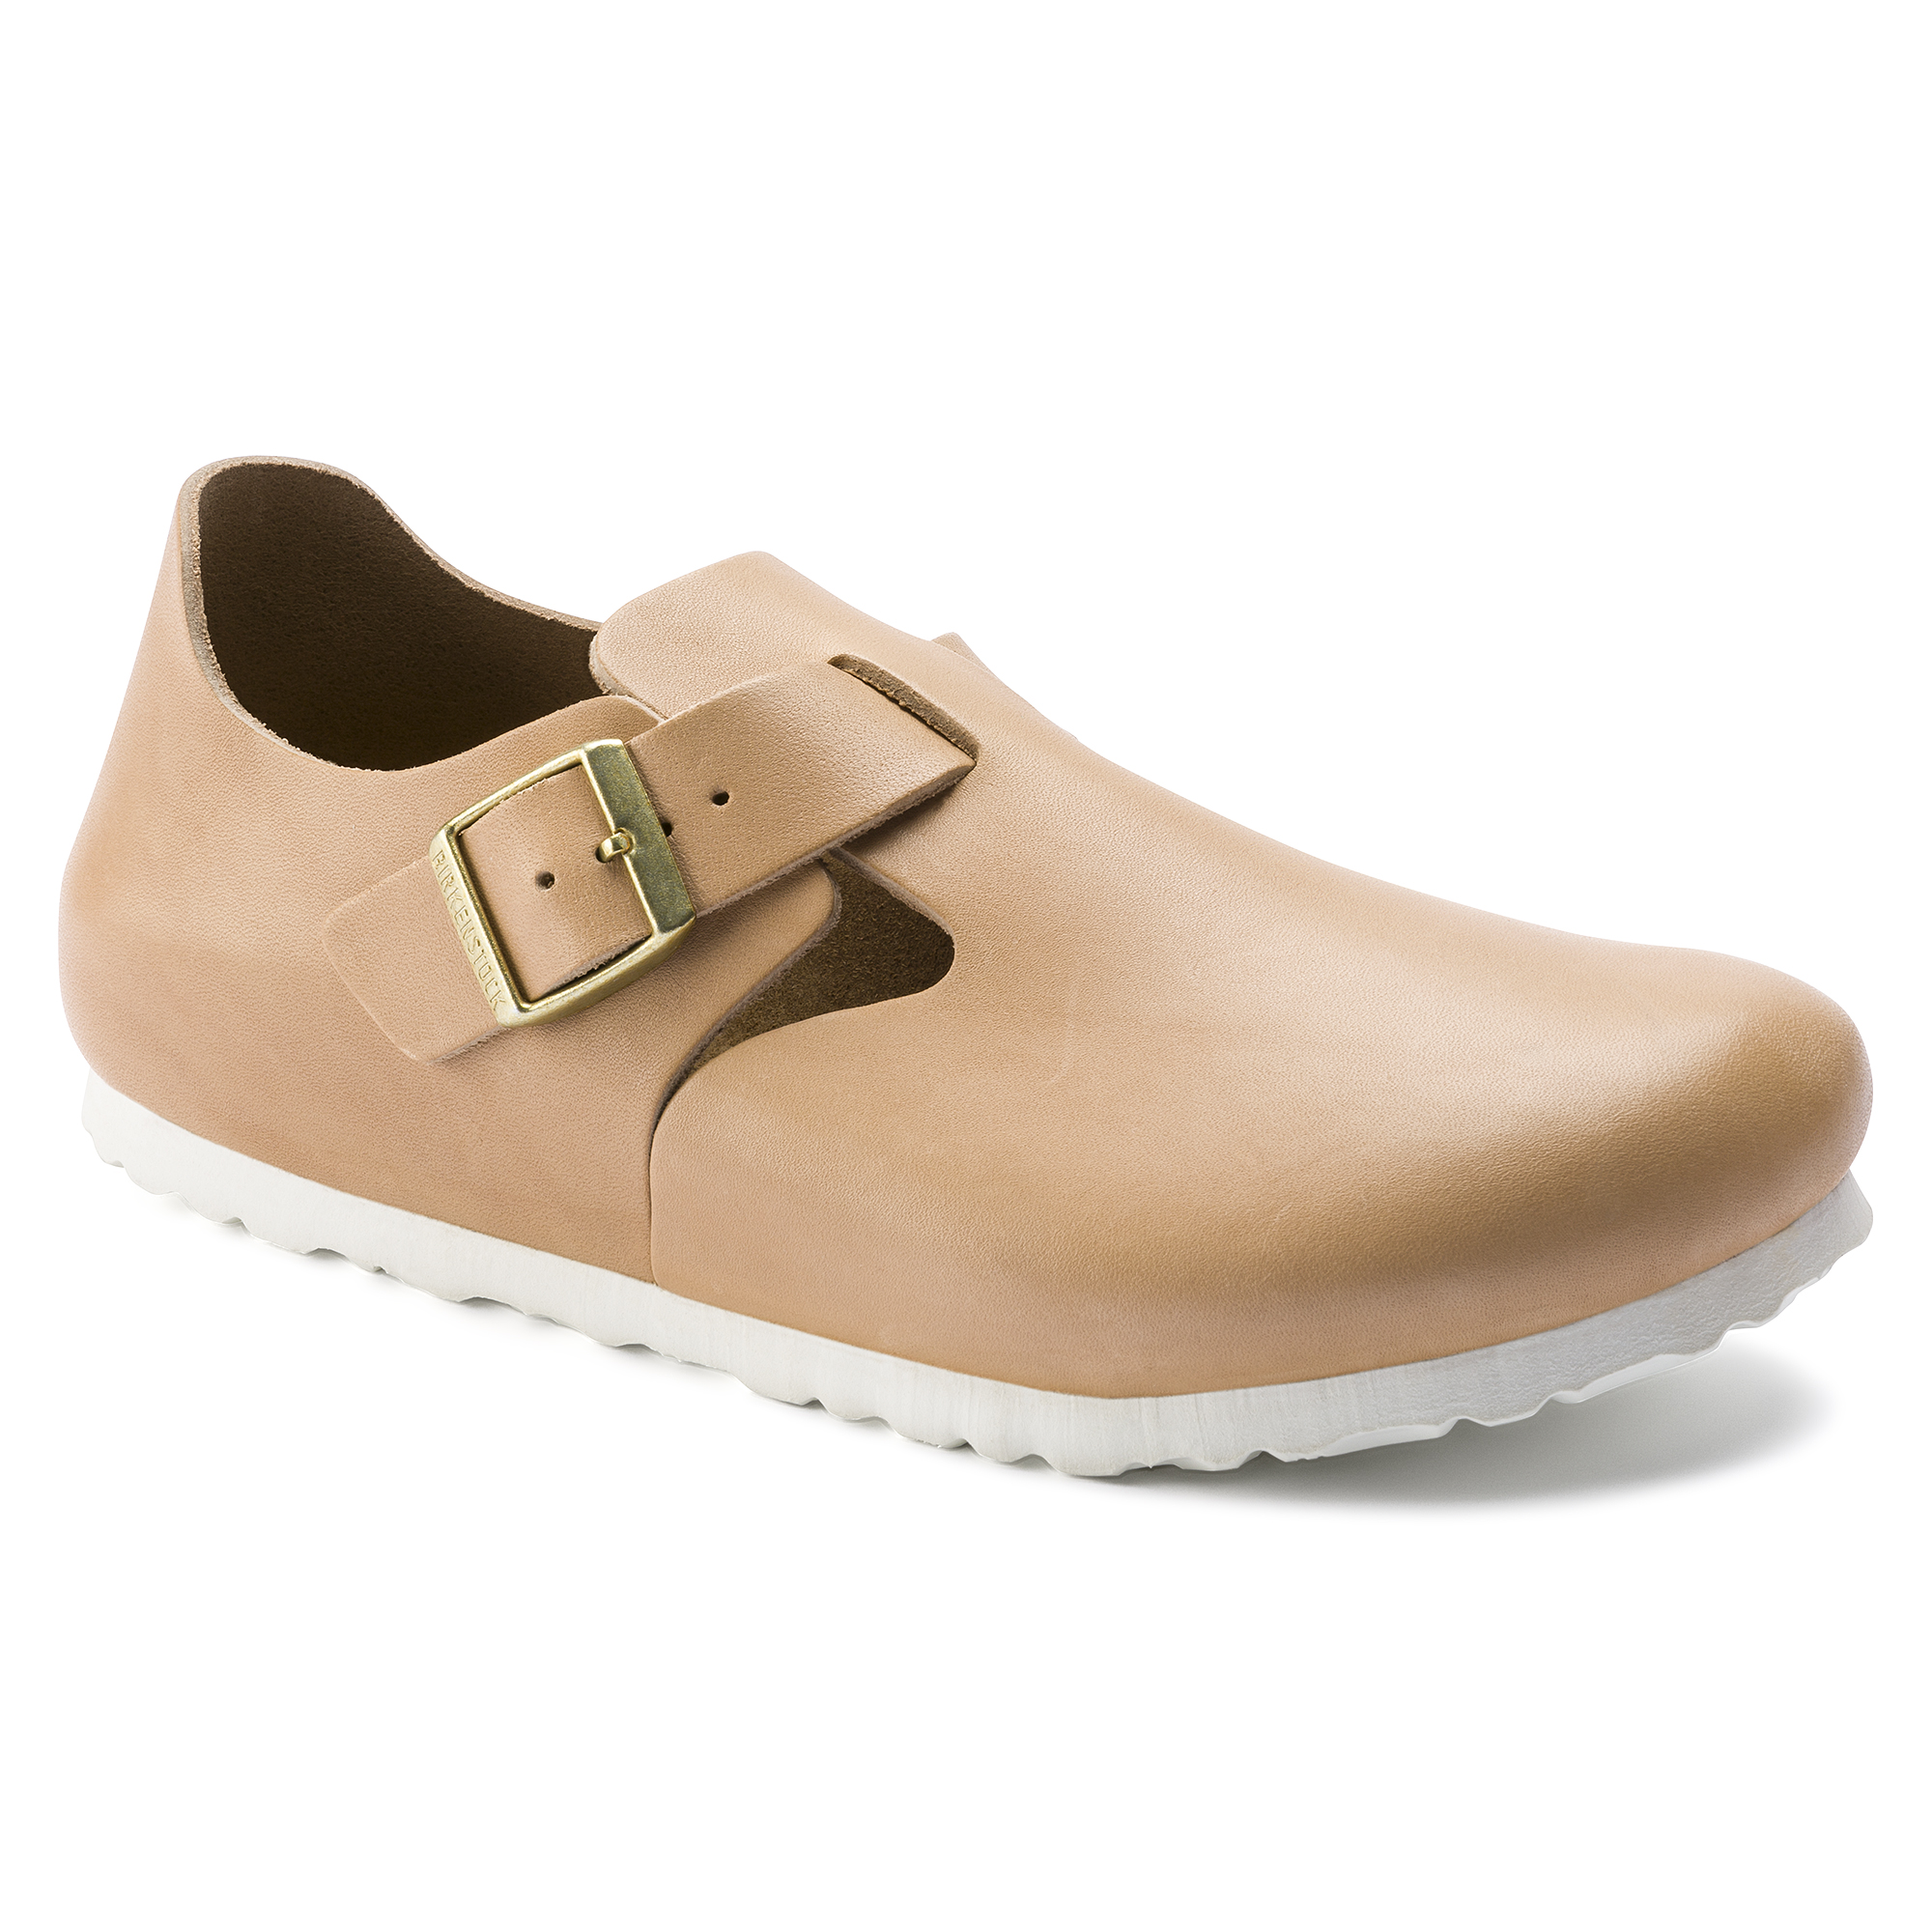 57121702c2158 London Natural Leather Nude ...